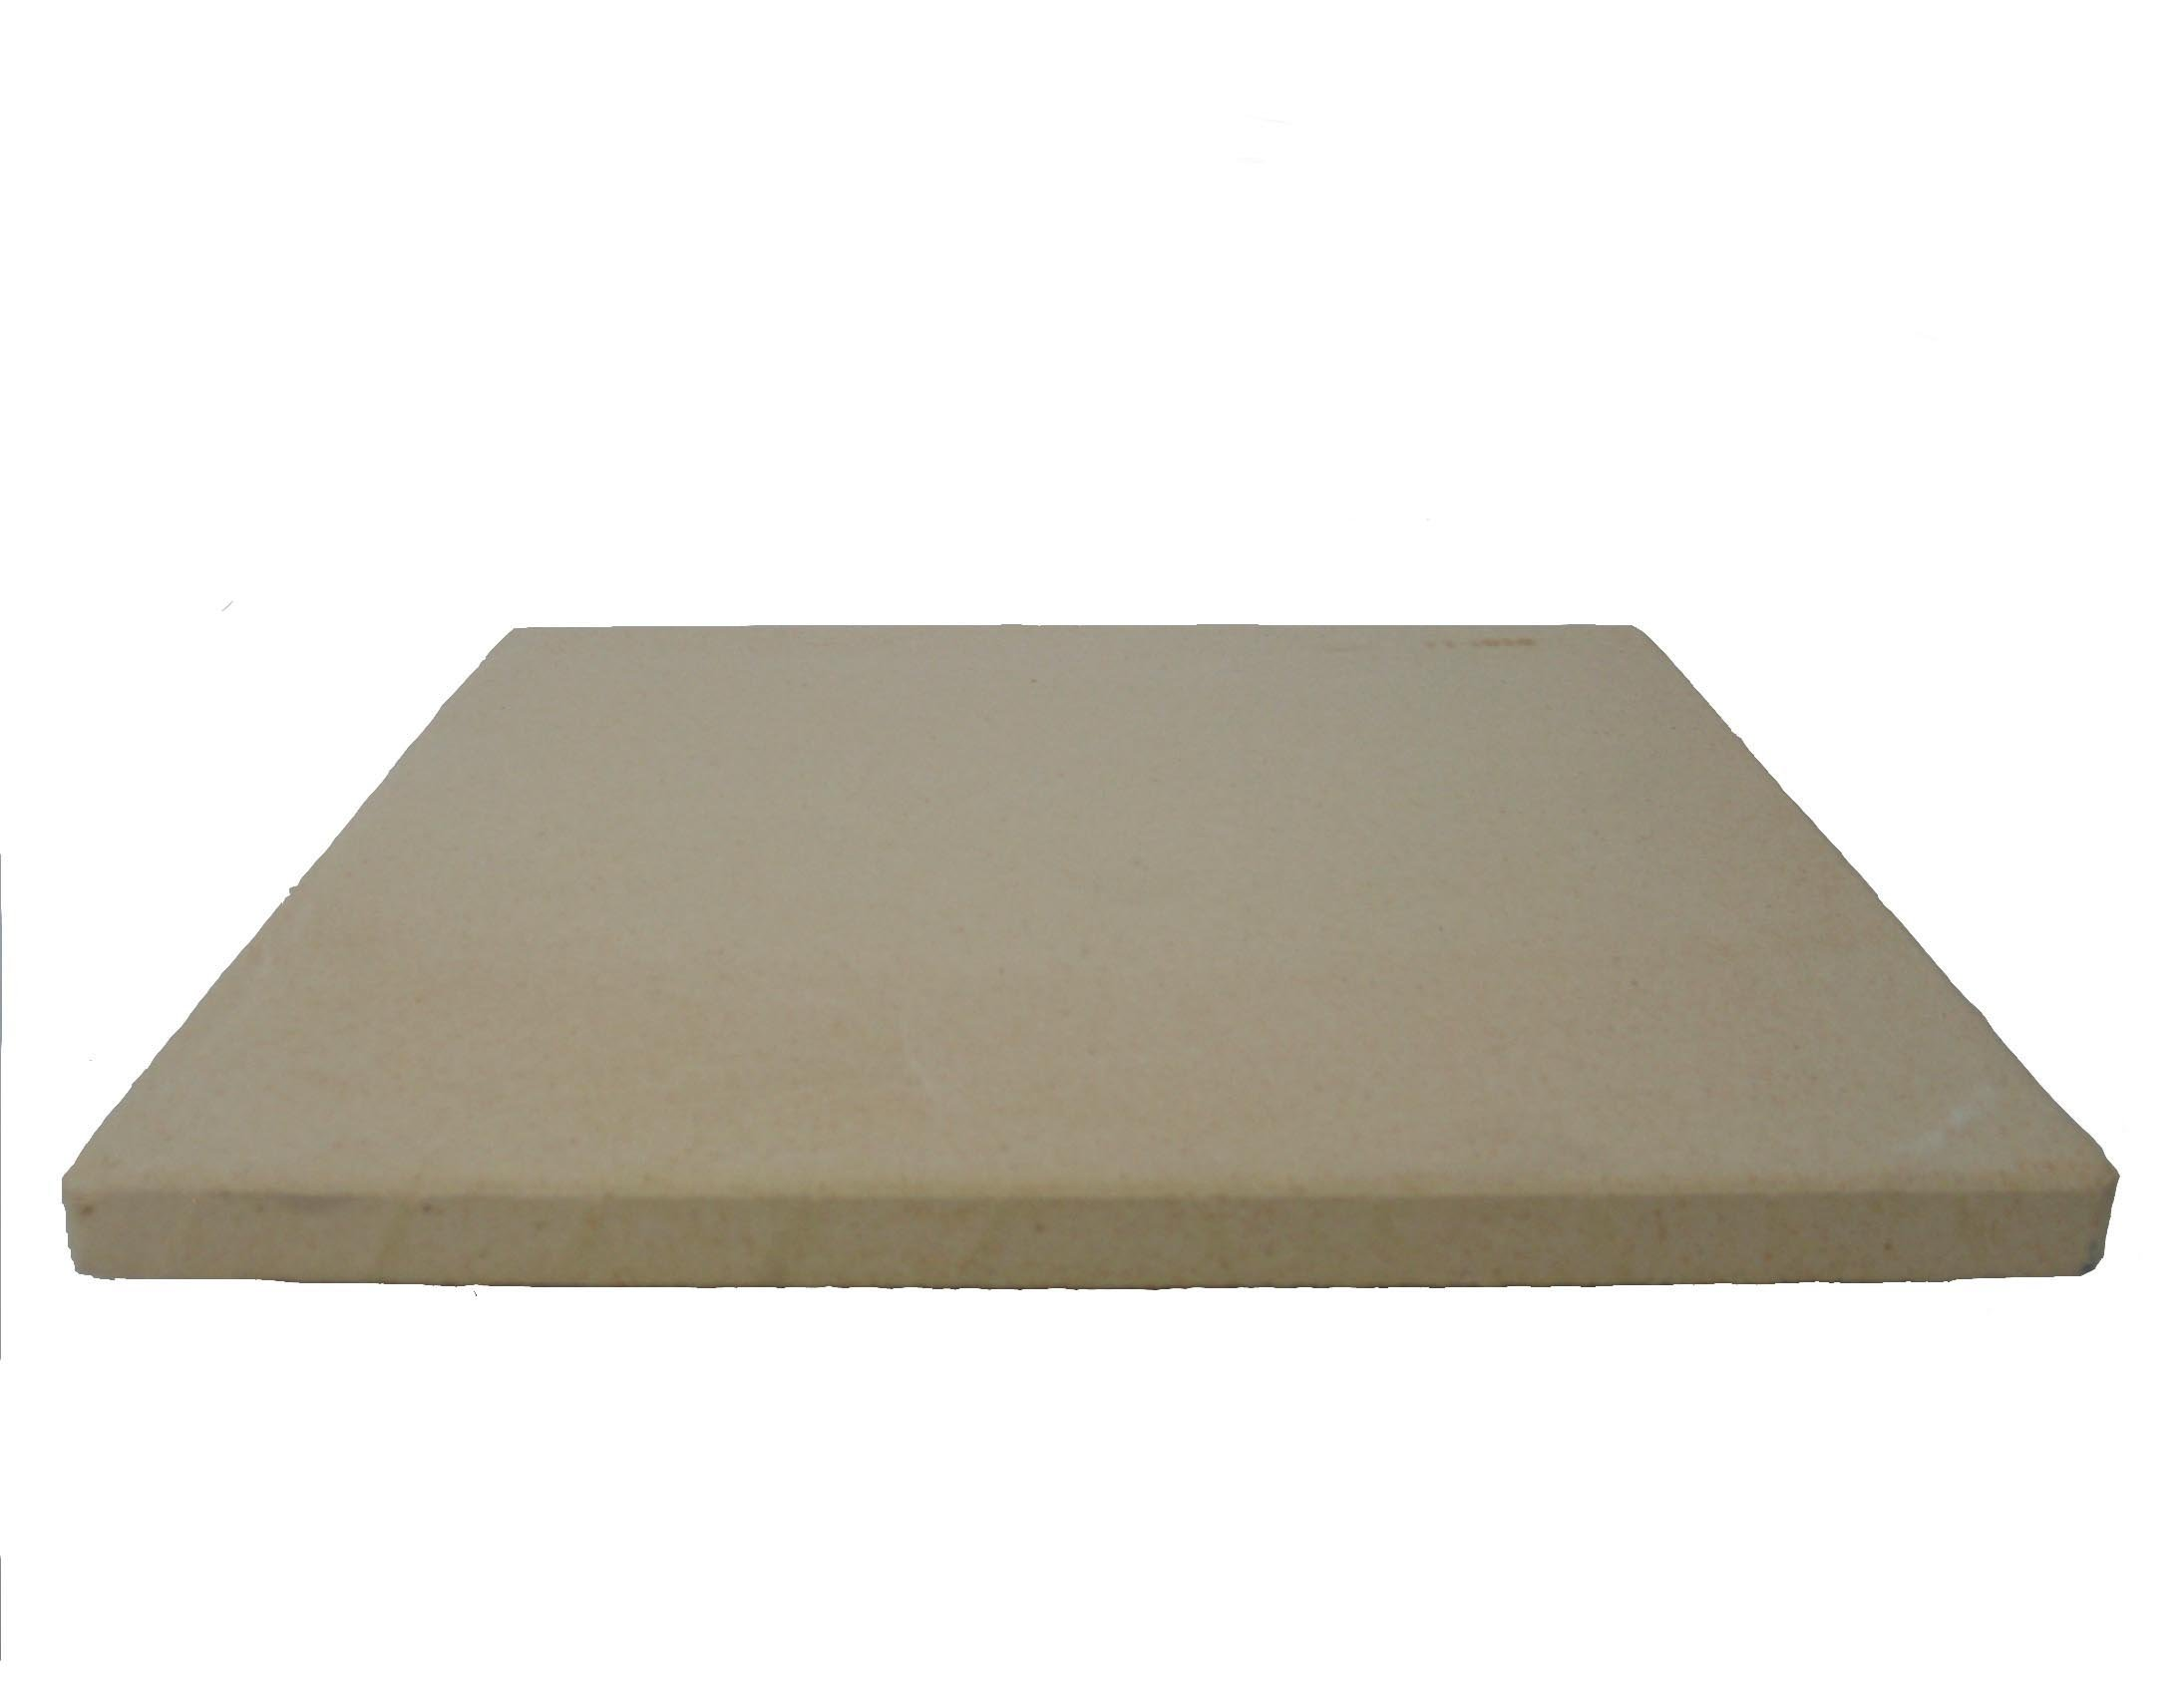 16 X 16 X 1 Square Industrial Pizza Stone by California Pizza Stones